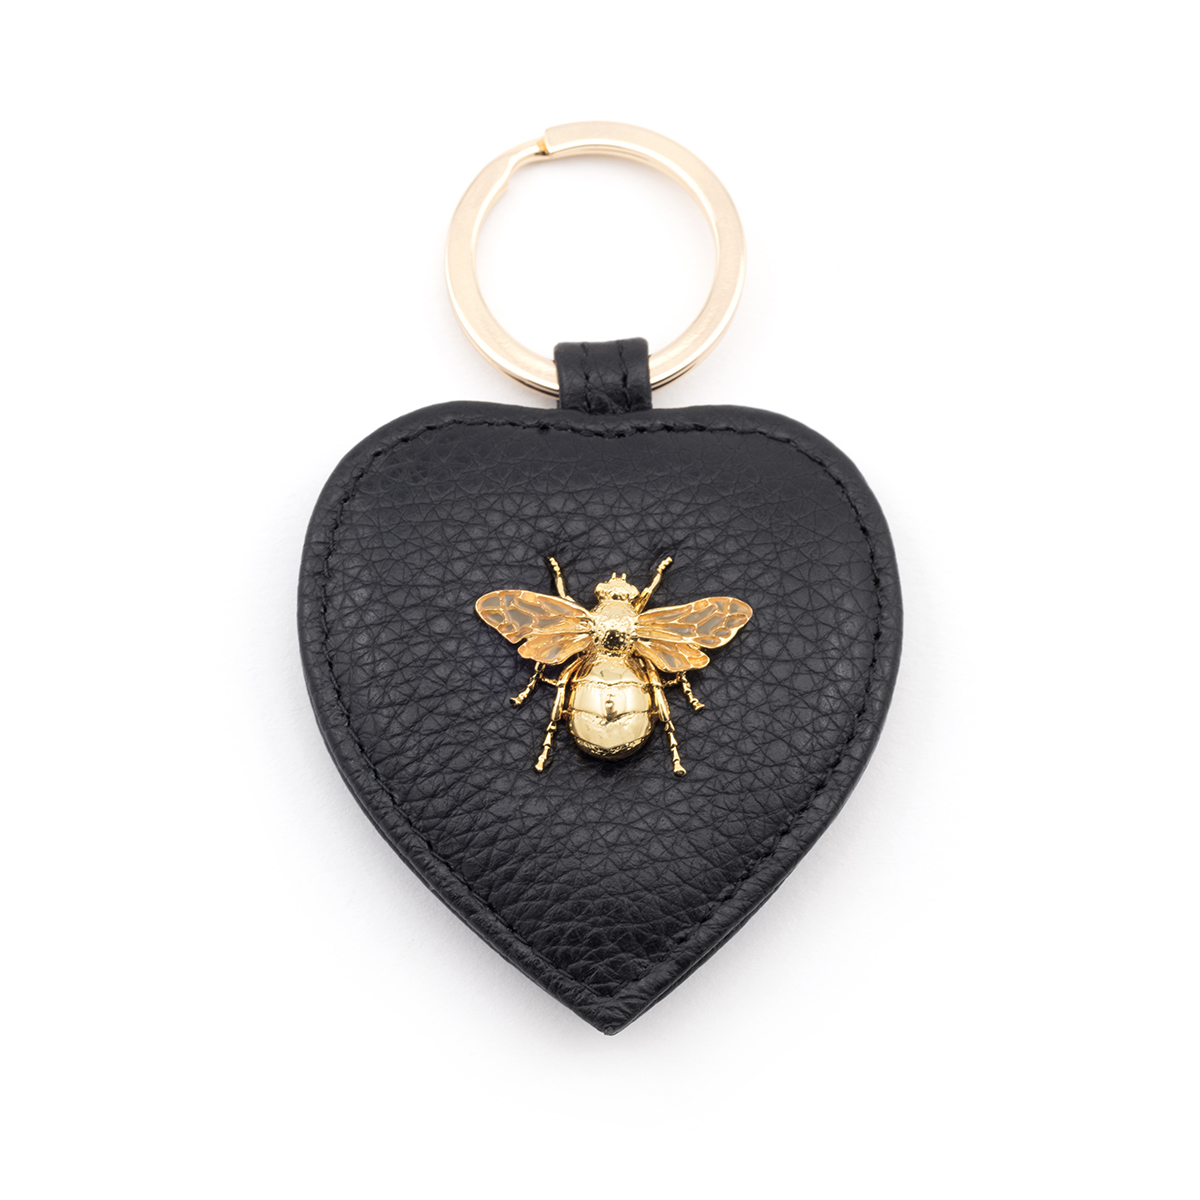 Queen Bee Leather Keyring - Black